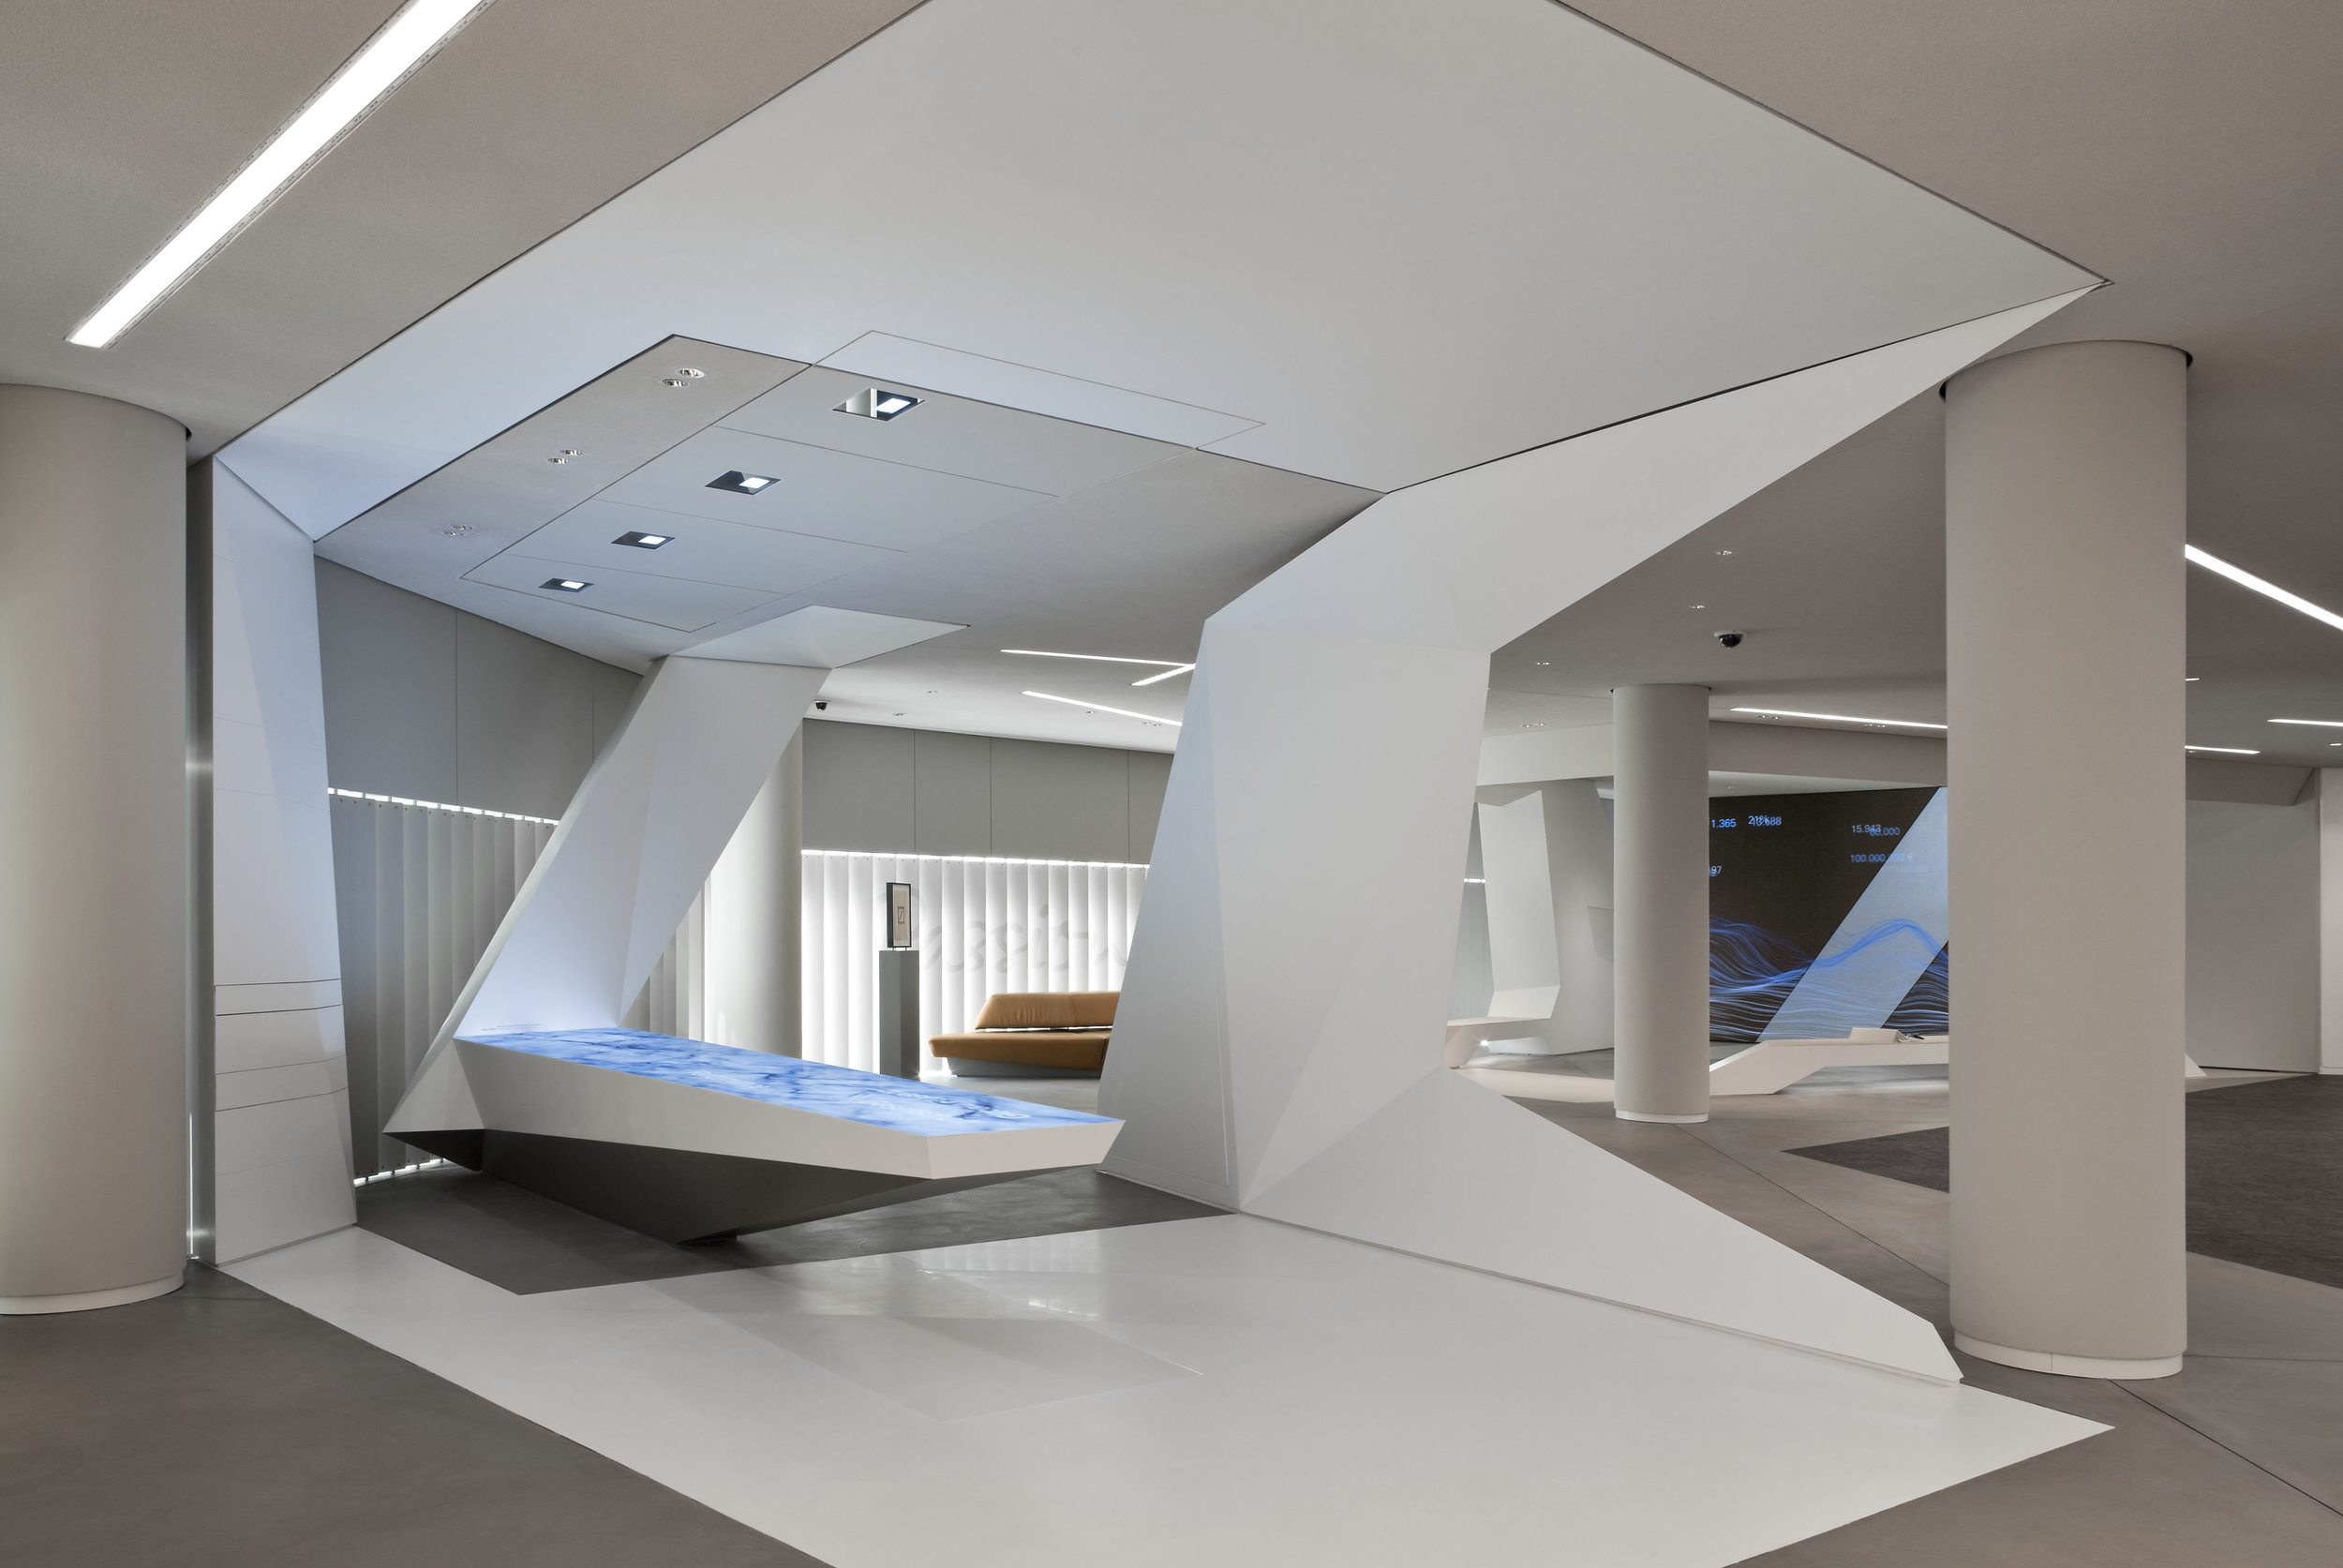 deutsche-bank-brand-space_coorporate-interior-design_coordination-berlin_07.jpg